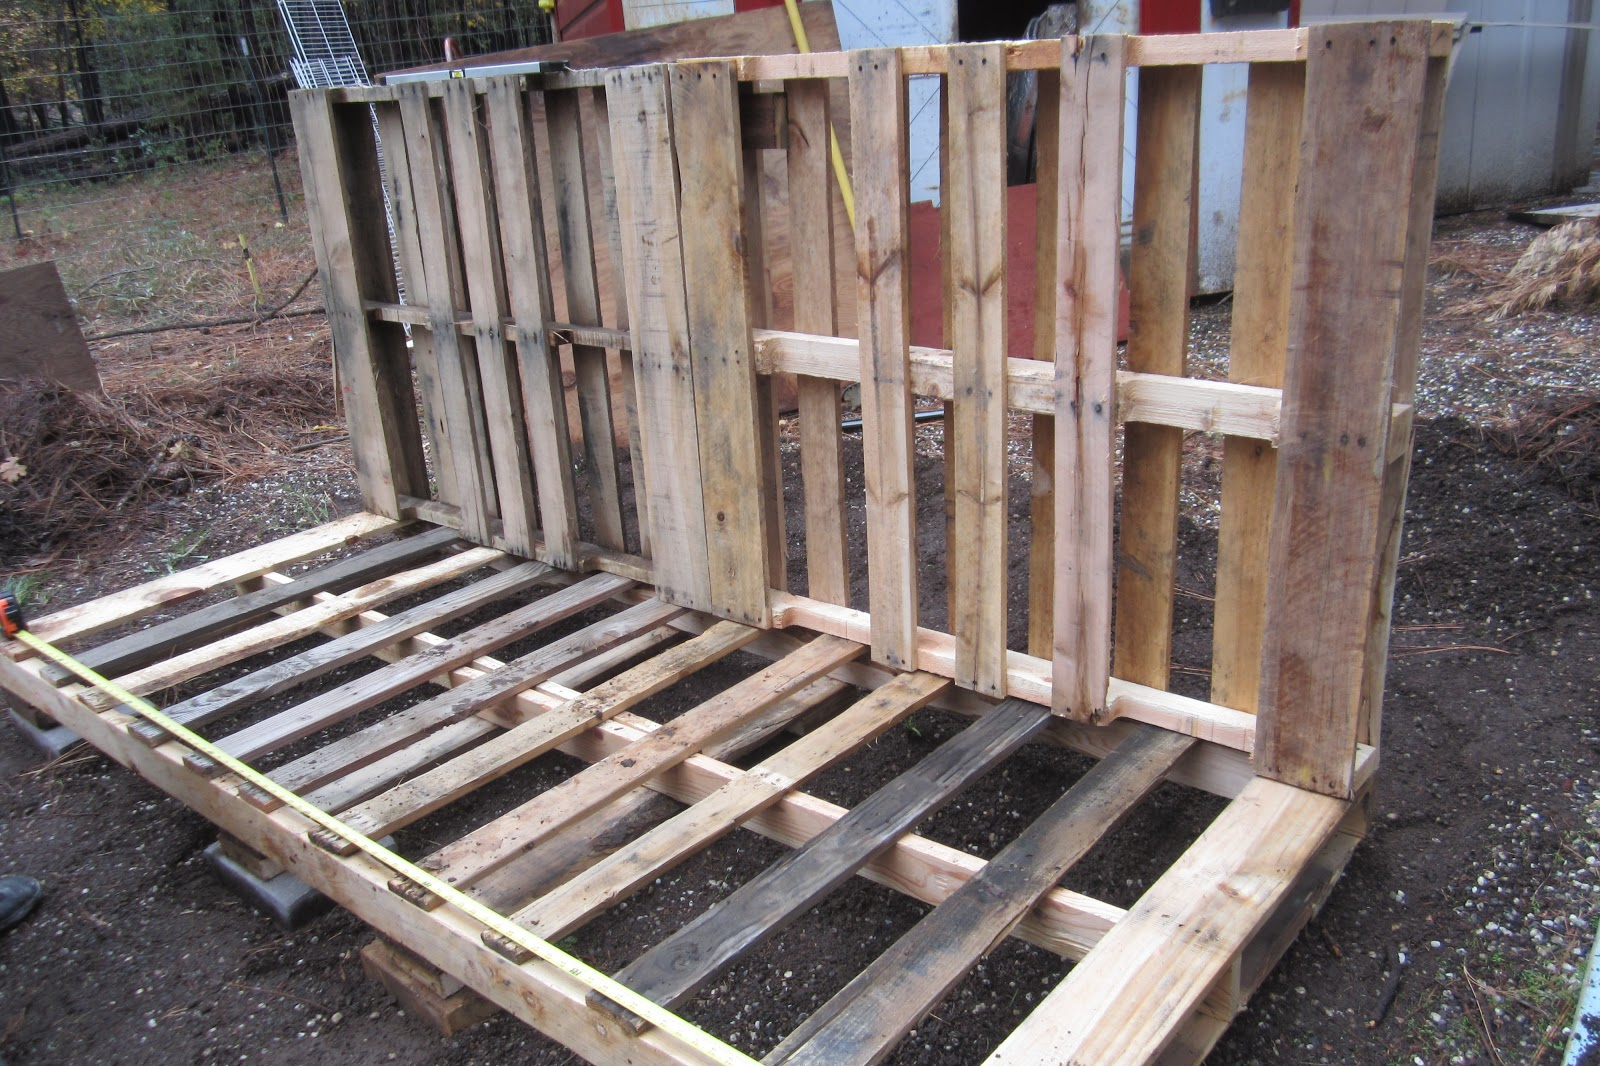 My Garden Pallet Shed: Constructing the Pallet Shed, Day 1